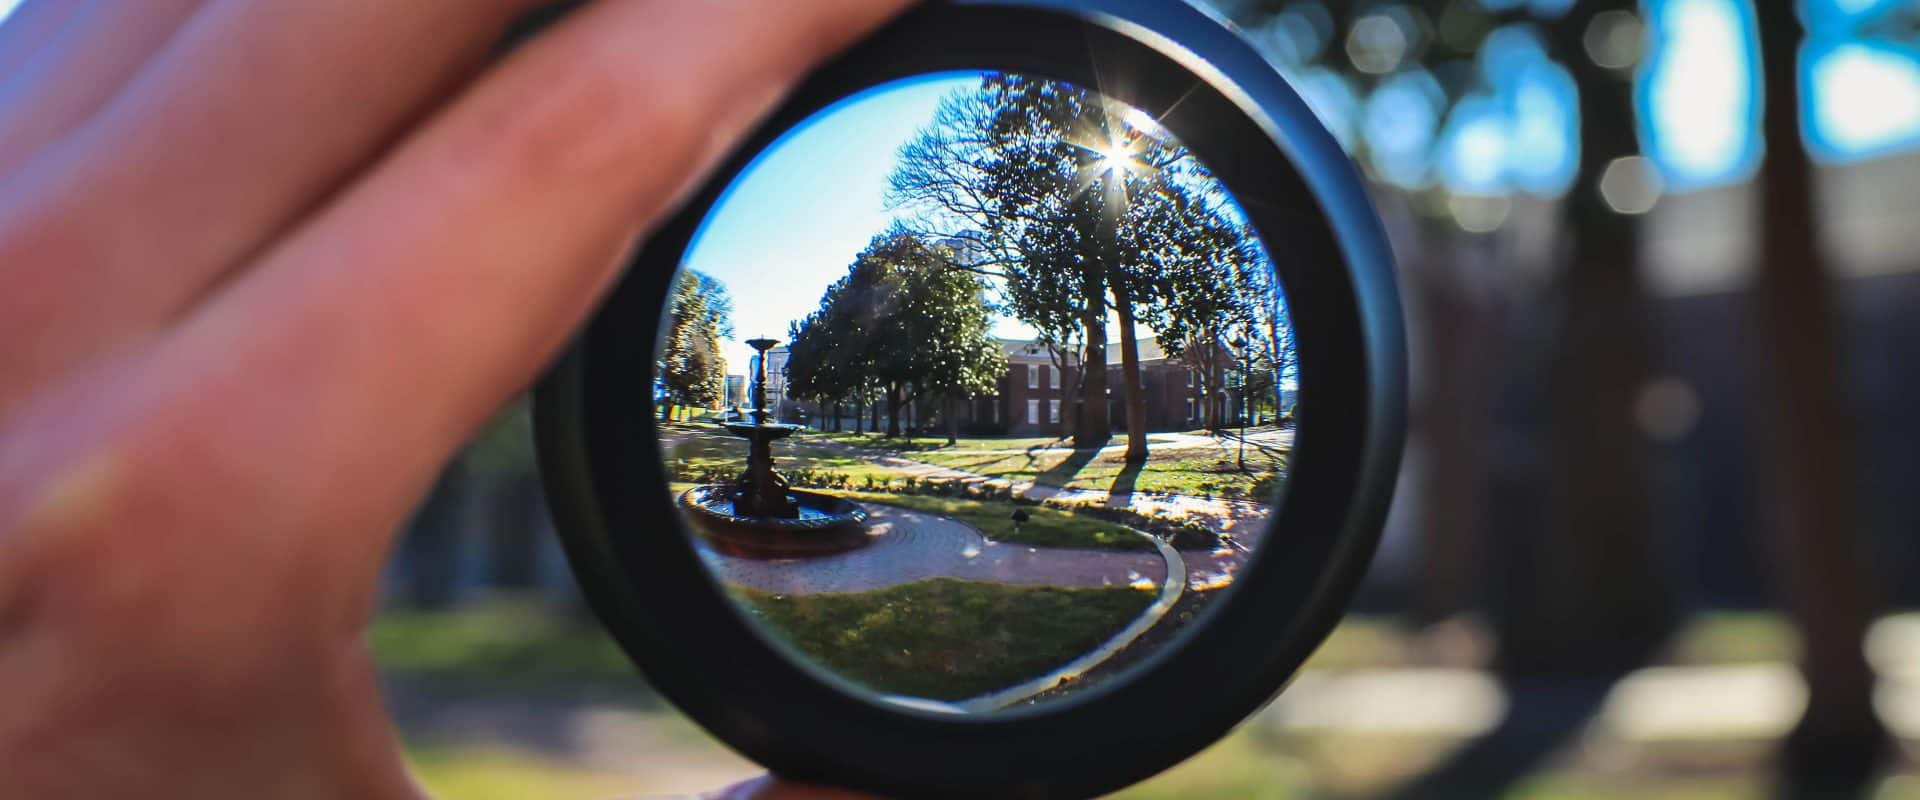 See the world through a different lens at WPU